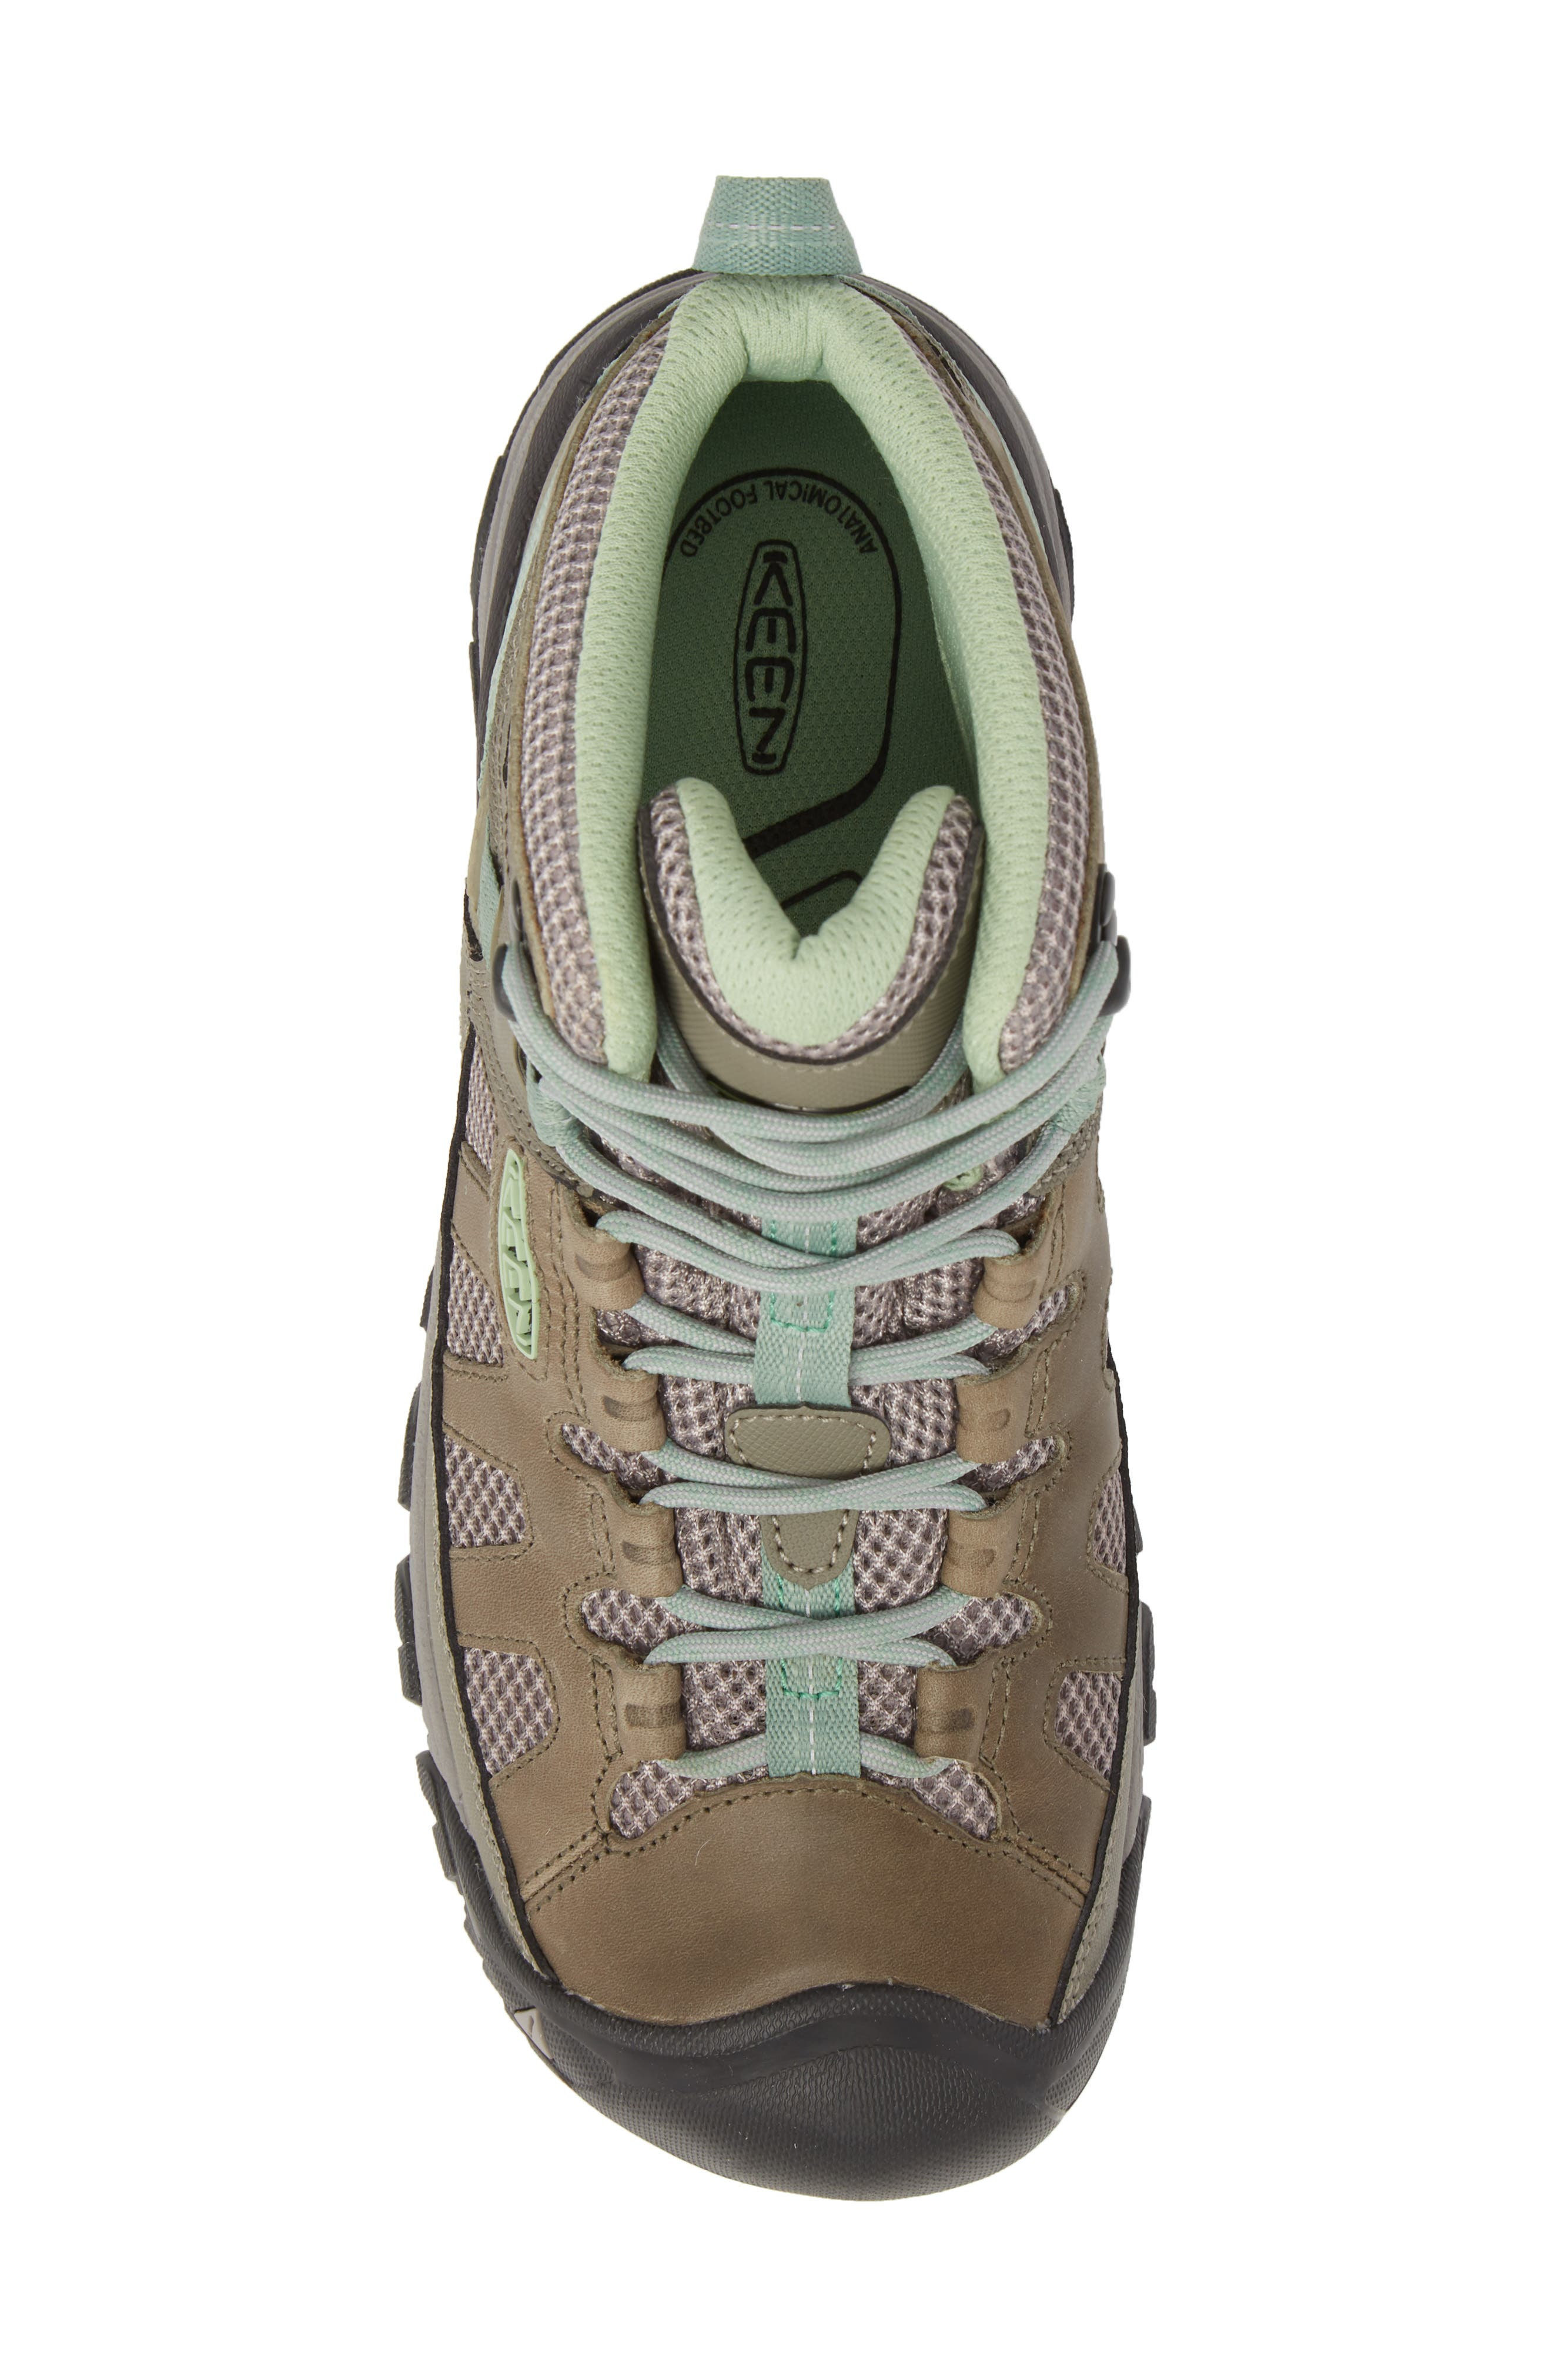 Targhee Vent Mid Hiking Shoe,                             Alternate thumbnail 5, color,                             Fumo/ Quiet Green Leather